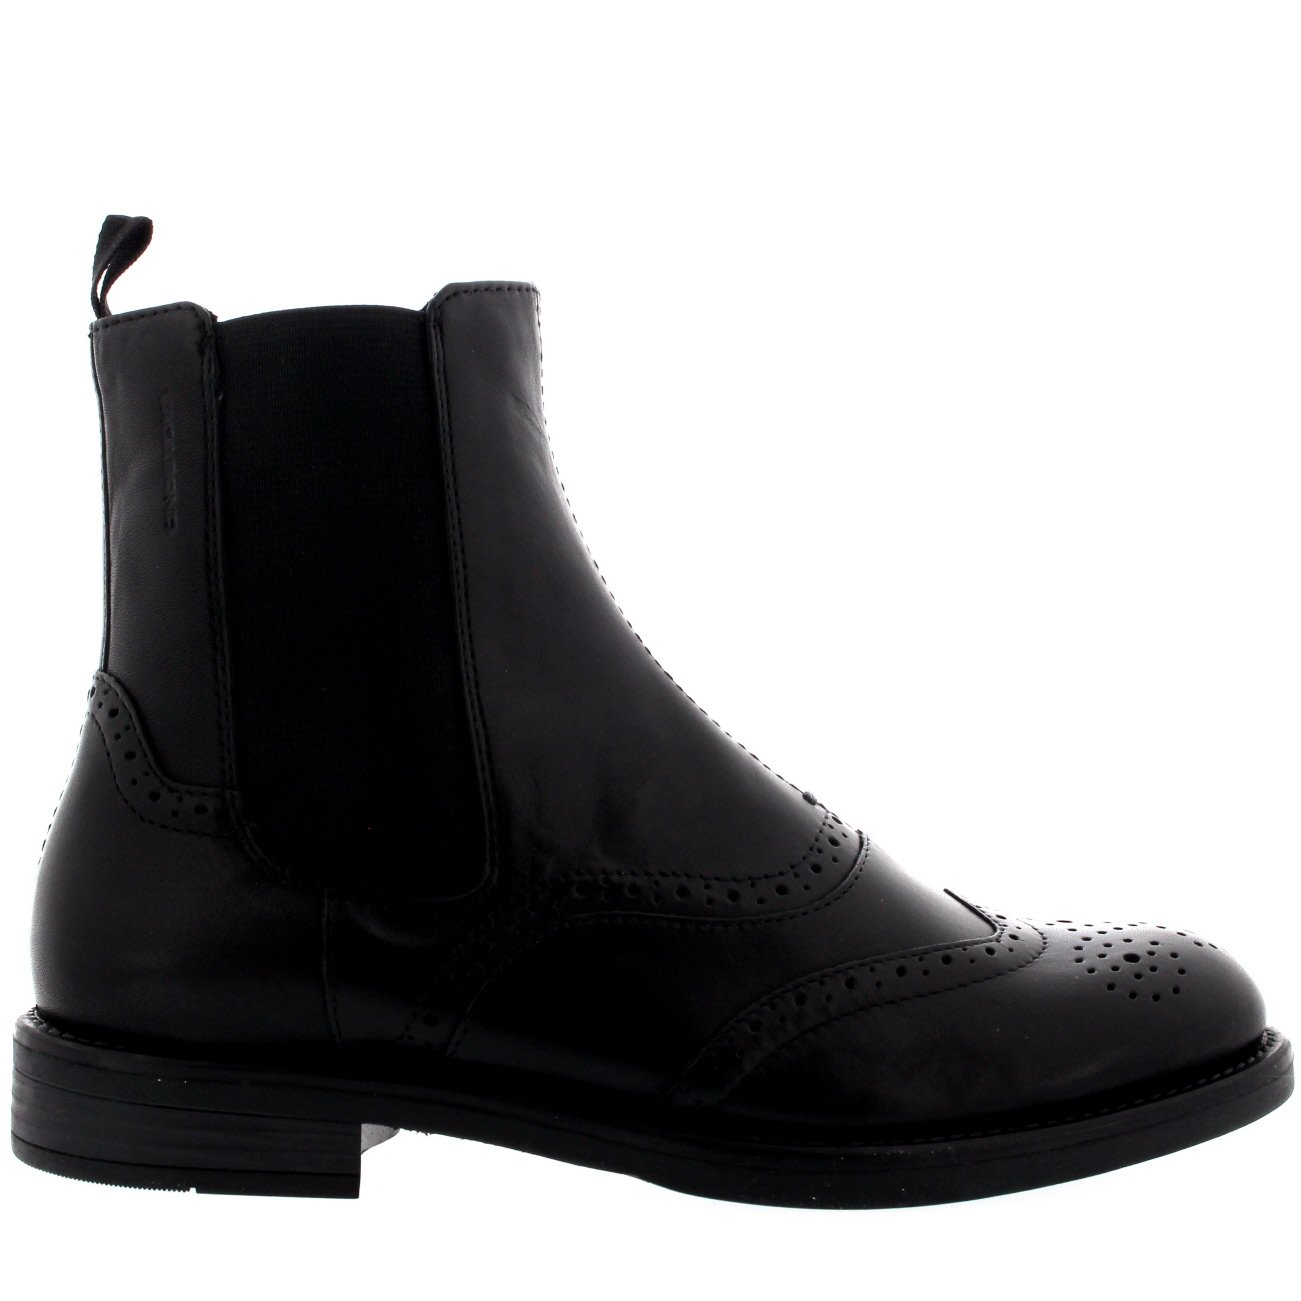 9e57c4f416817 Amazon.com | Womens Vagabond Amina Leather Casual Brogue Black Ankle  Chelsea Boots | Ankle & Bootie